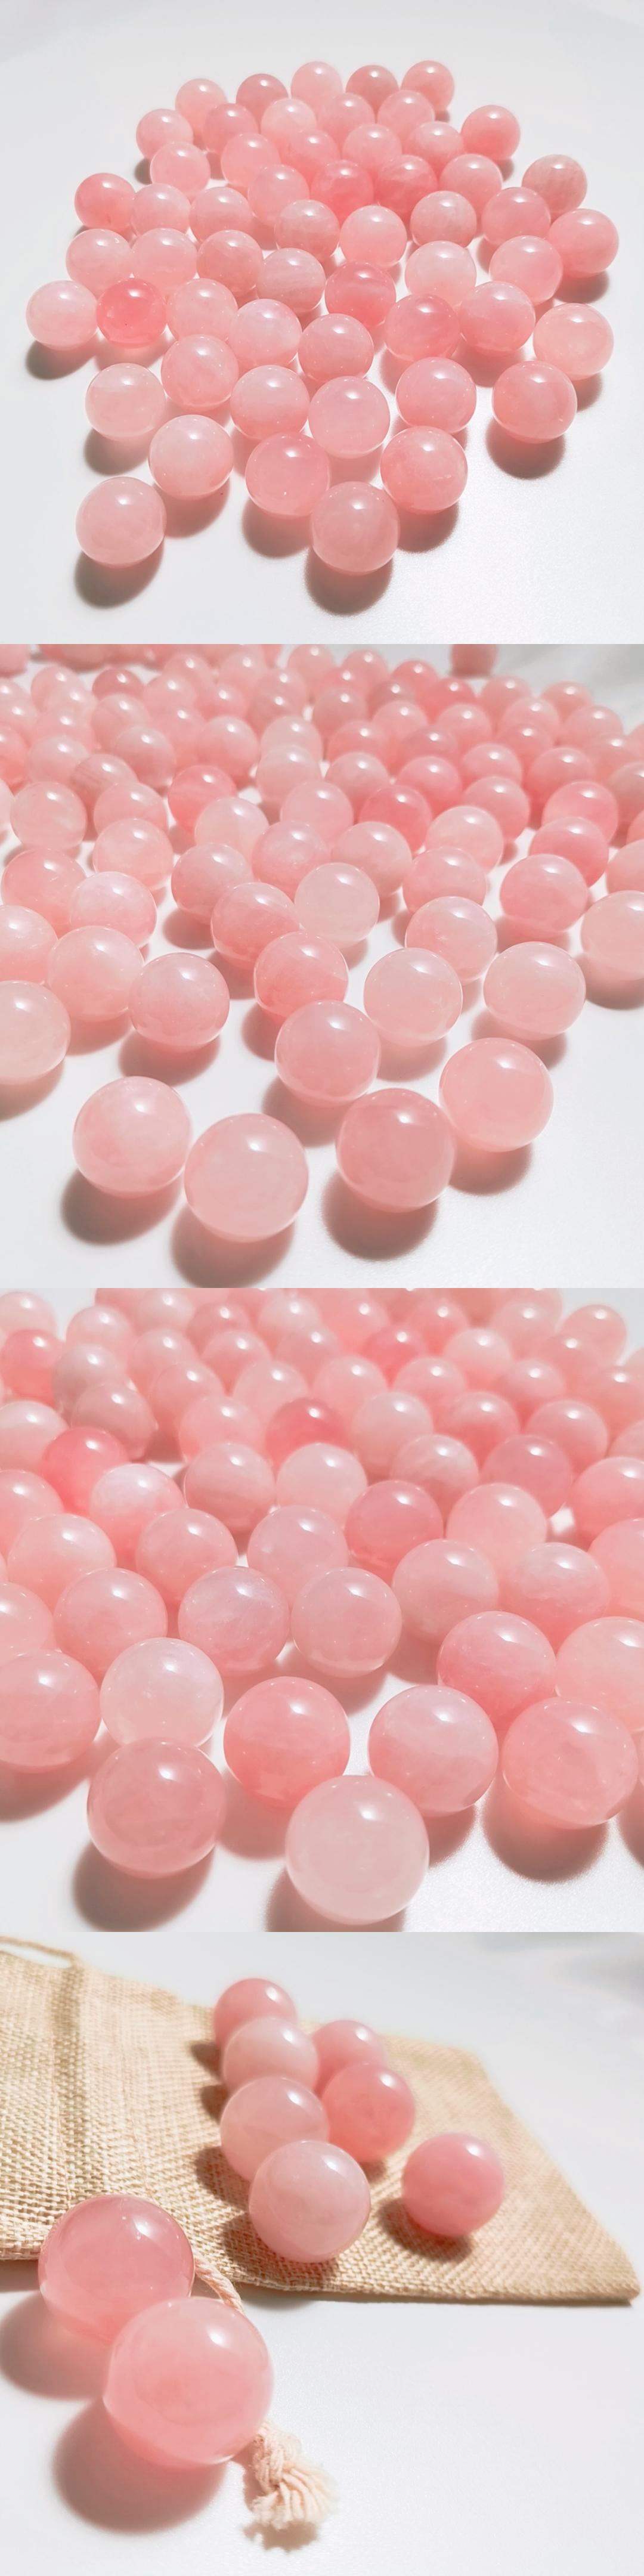 20mm natural pink quartz crystal spheres rose quartz balls